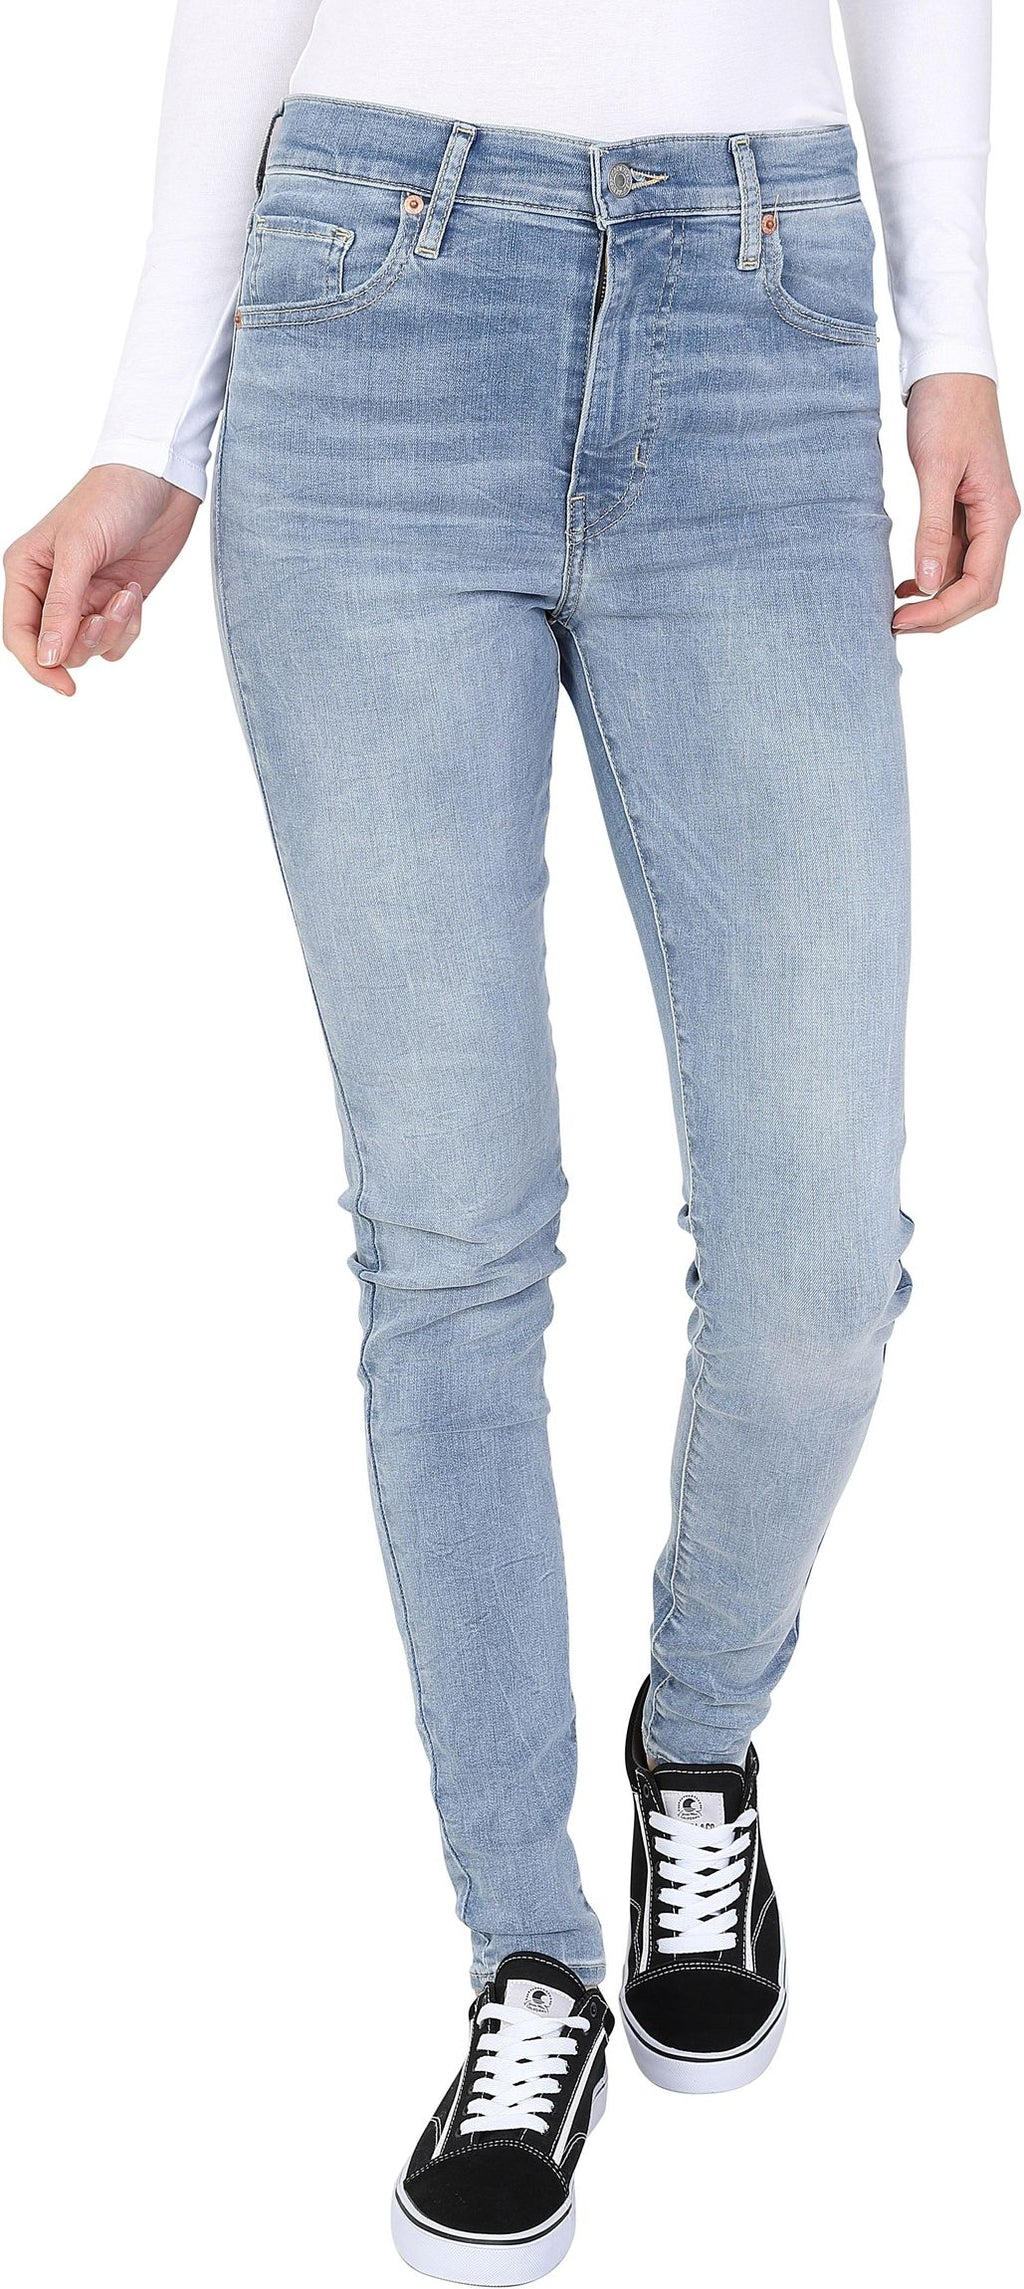 Levi's Mile High Super Skinny Denim Jeans Blue